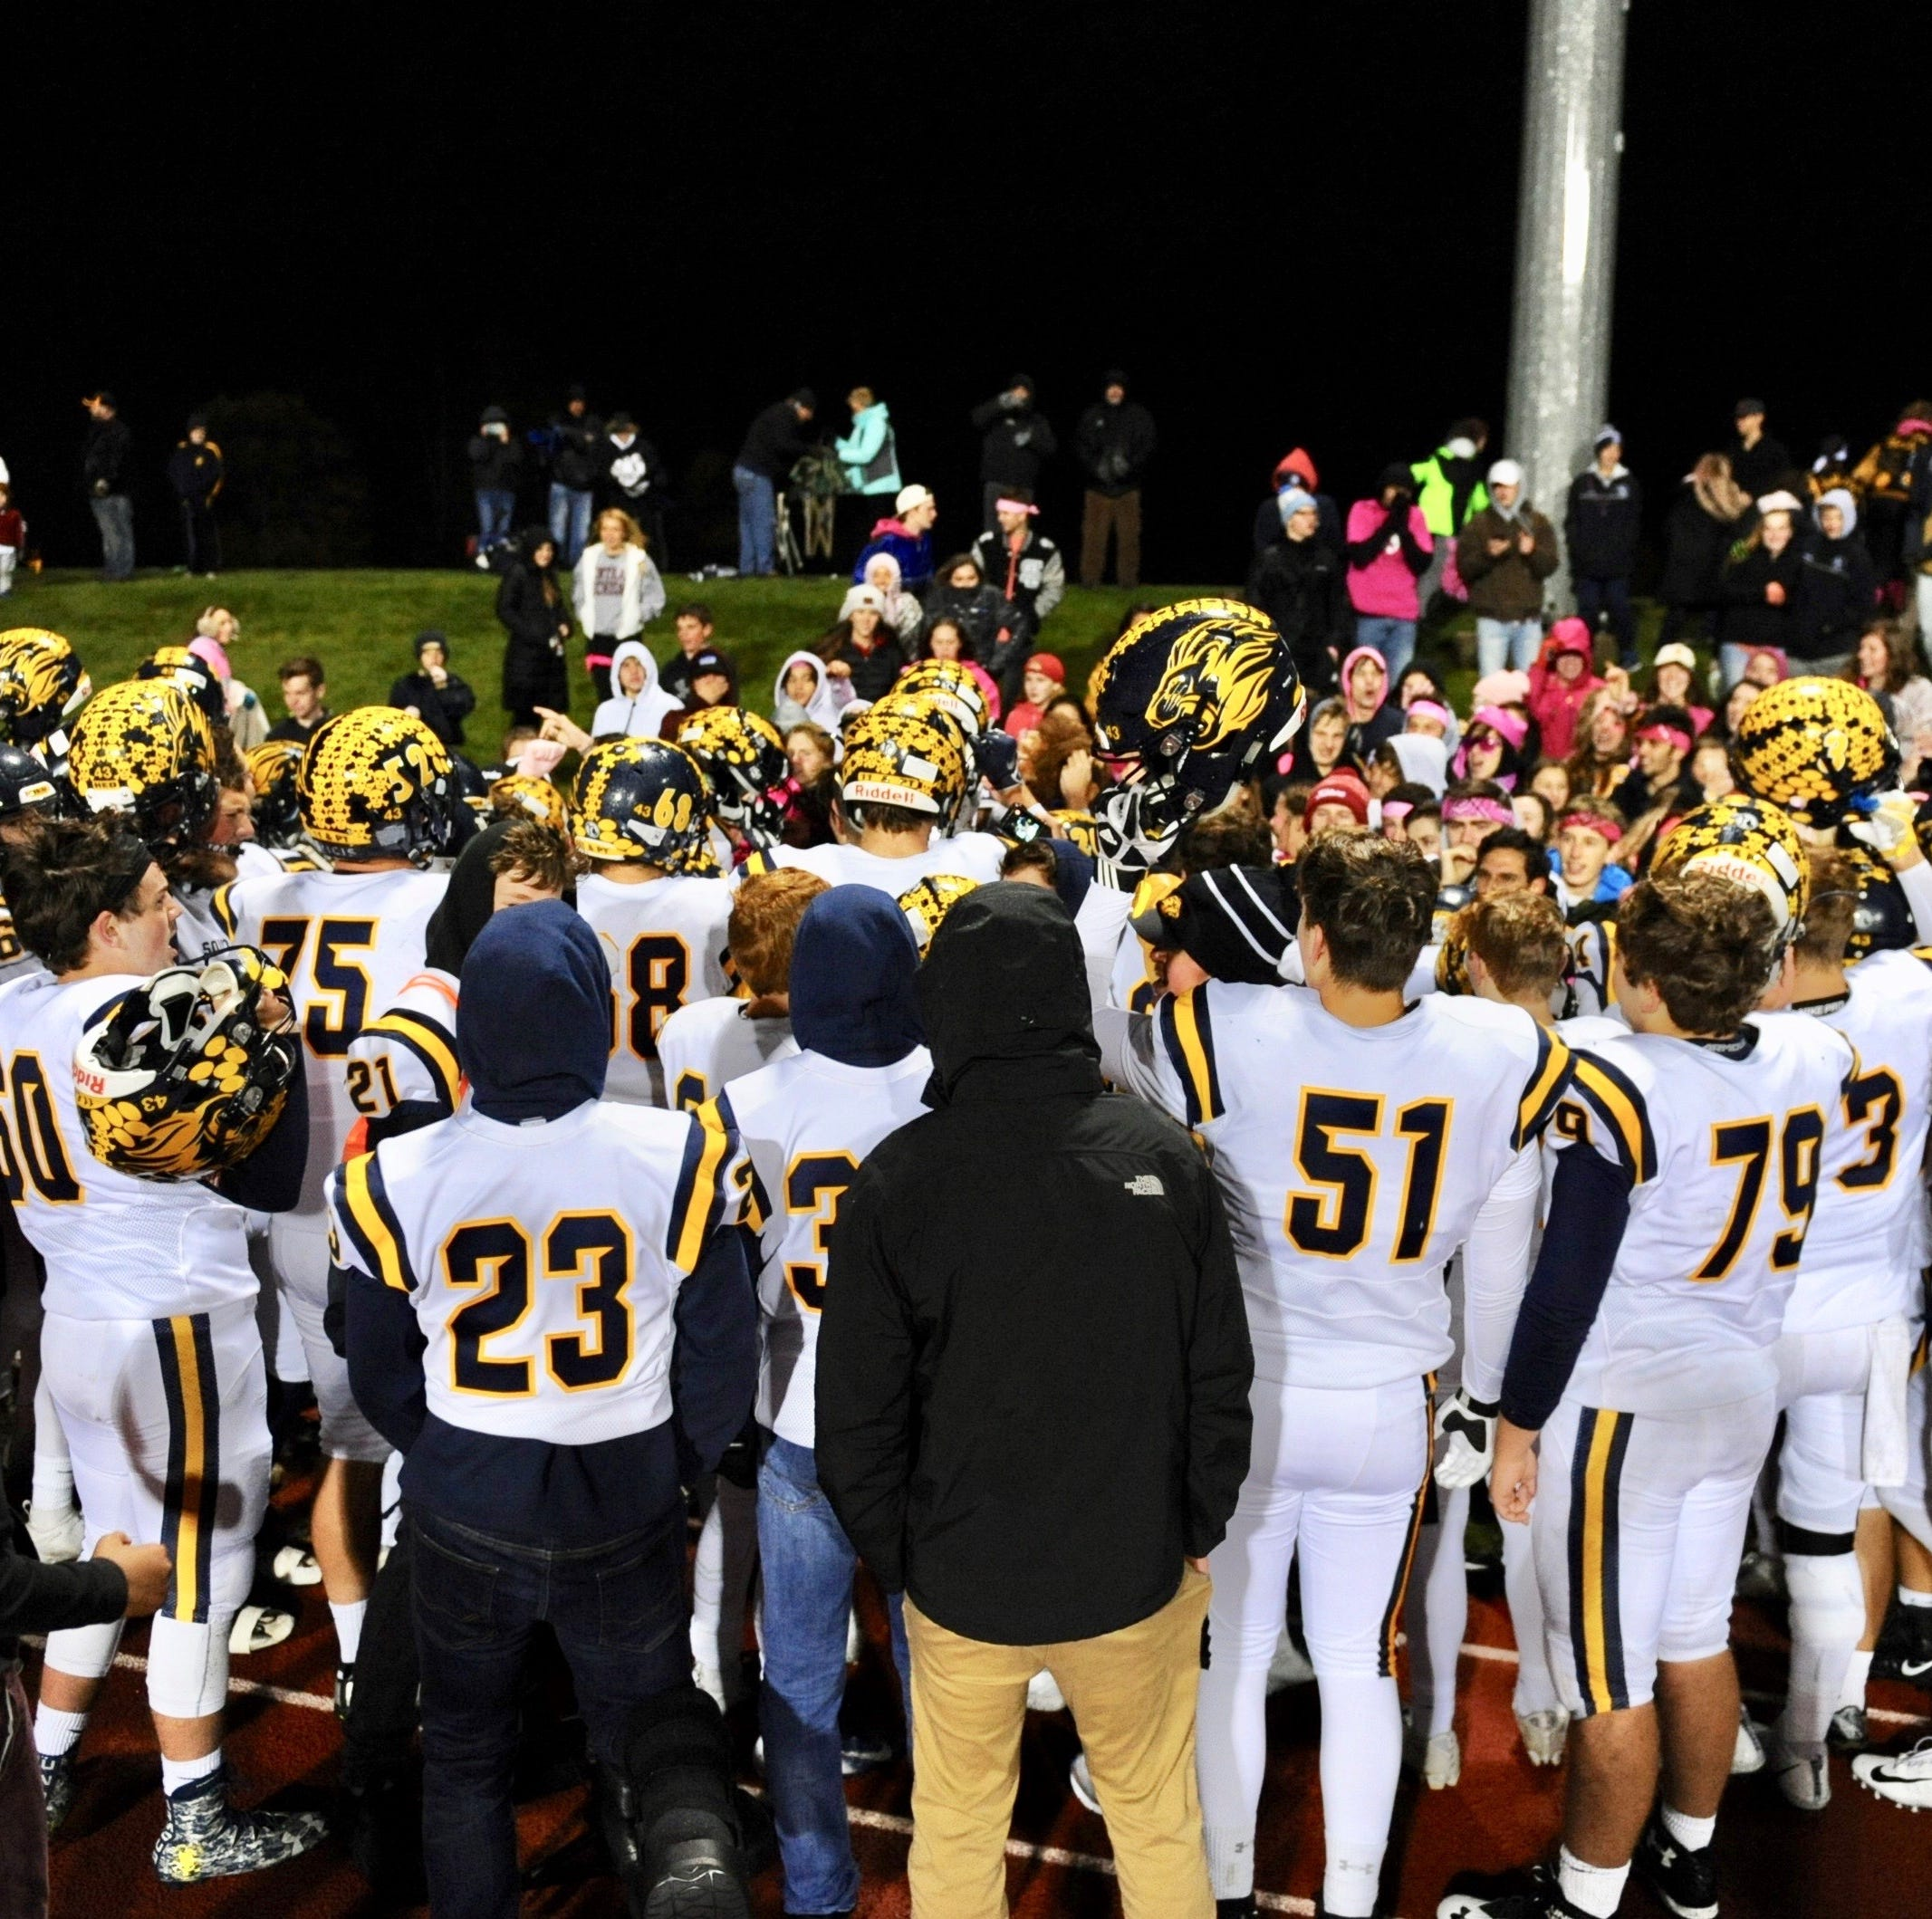 South Lyon guts out ninth win in a row, spoiling Cougars' playoff bid